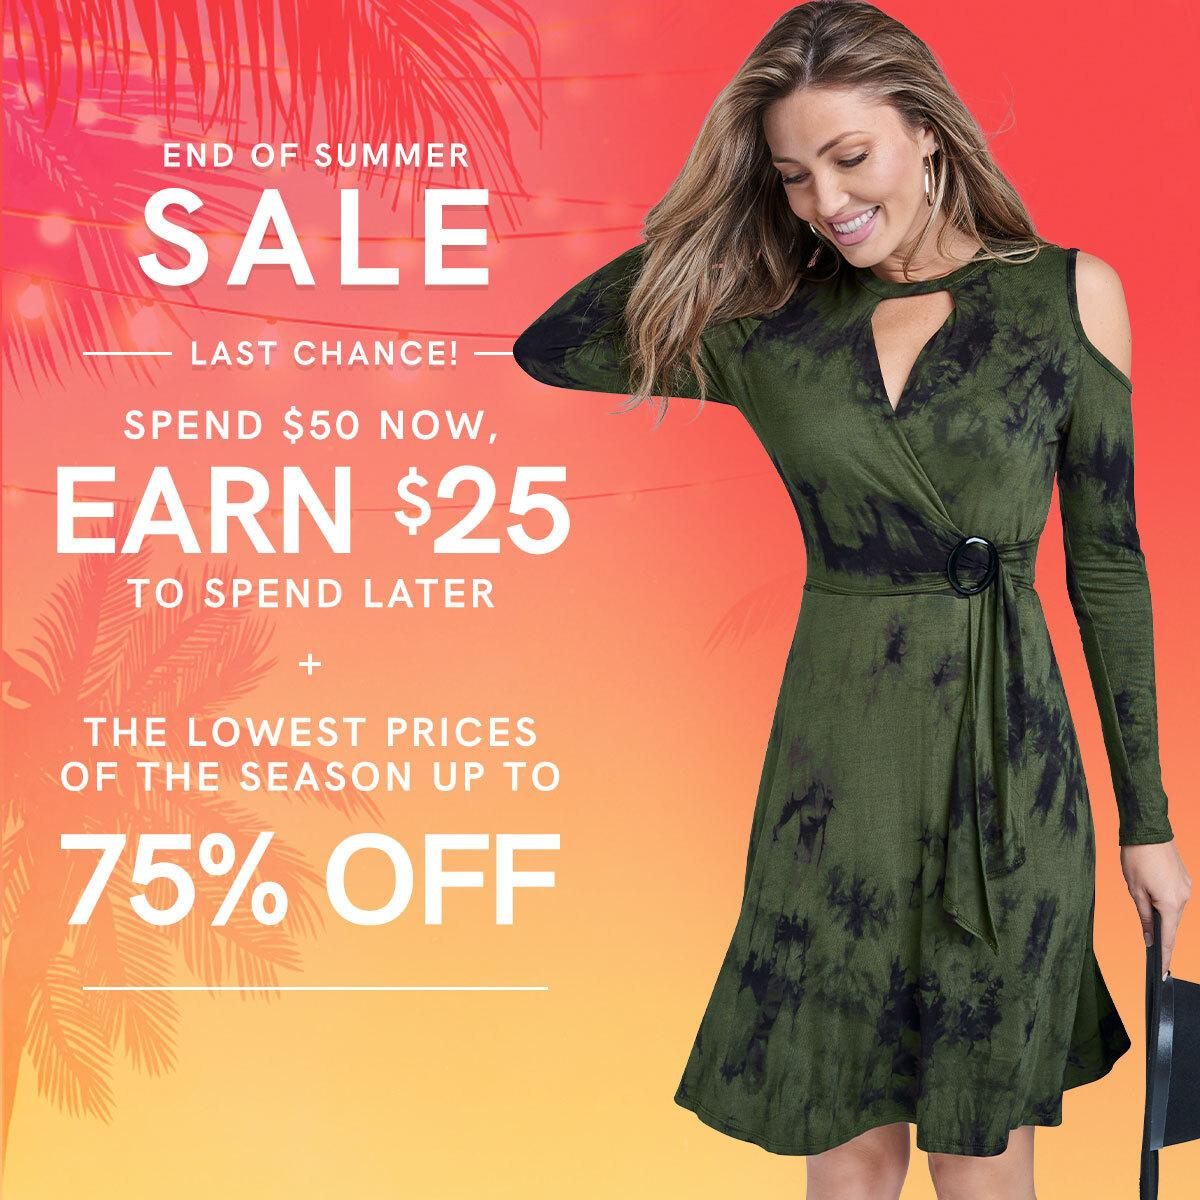 Here's a weekend treat: spend $50 now and earn $25 to spend later! Click the links below to redeem this offer.  Faux Wrap Tie Dye Dress: https://t.co/mFLTiyWDKR  End of Summer Sale: https://t.co/fLdQvO7l9d https://t.co/m0x82dkxir